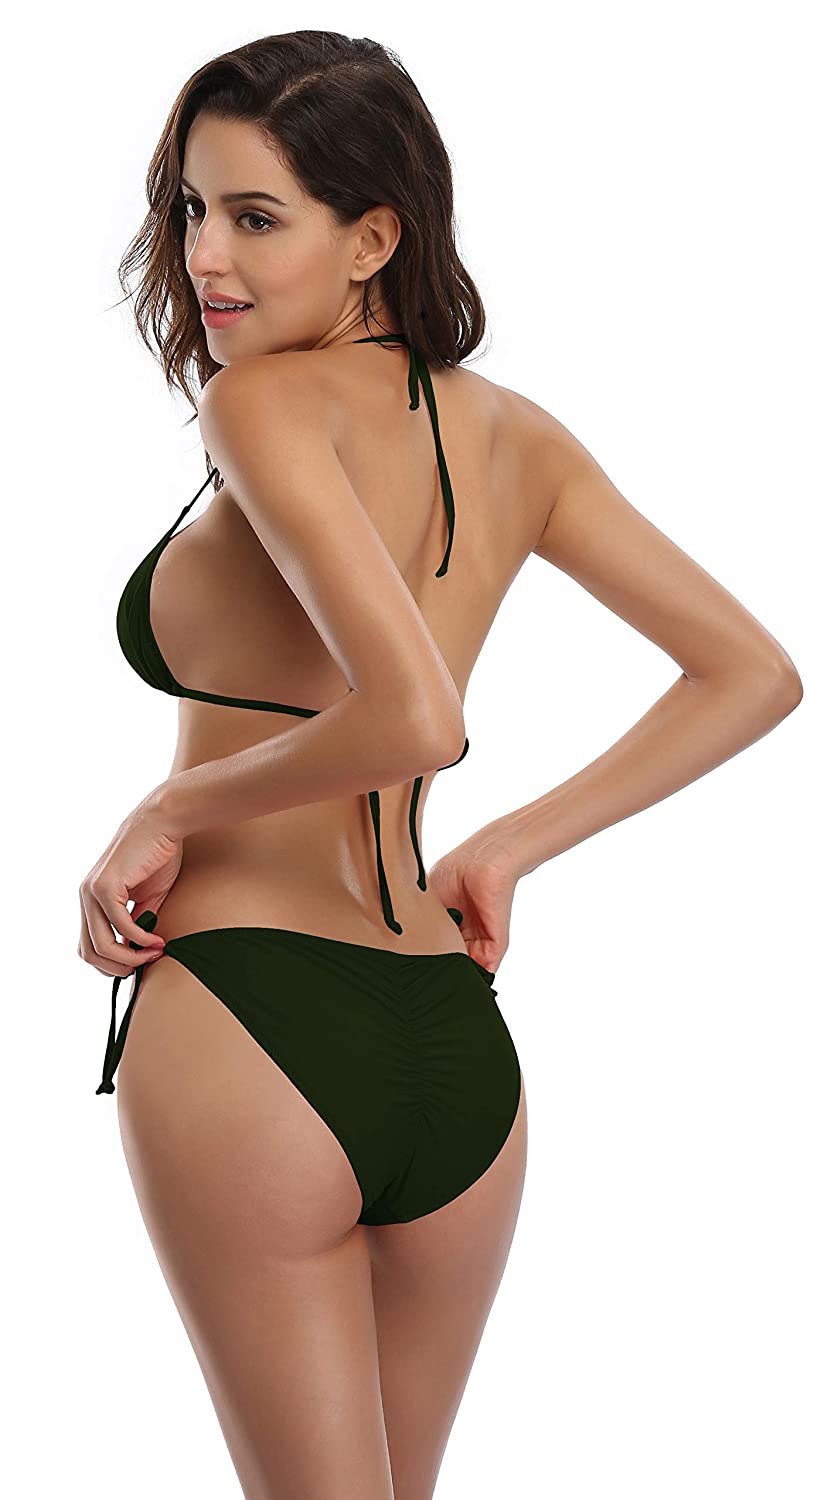 c75cda904062 Amazon.com  SHEKINI Women s Tie Side Bottom Padded Top Triangle Bikini  Bathing Suit  Clothing